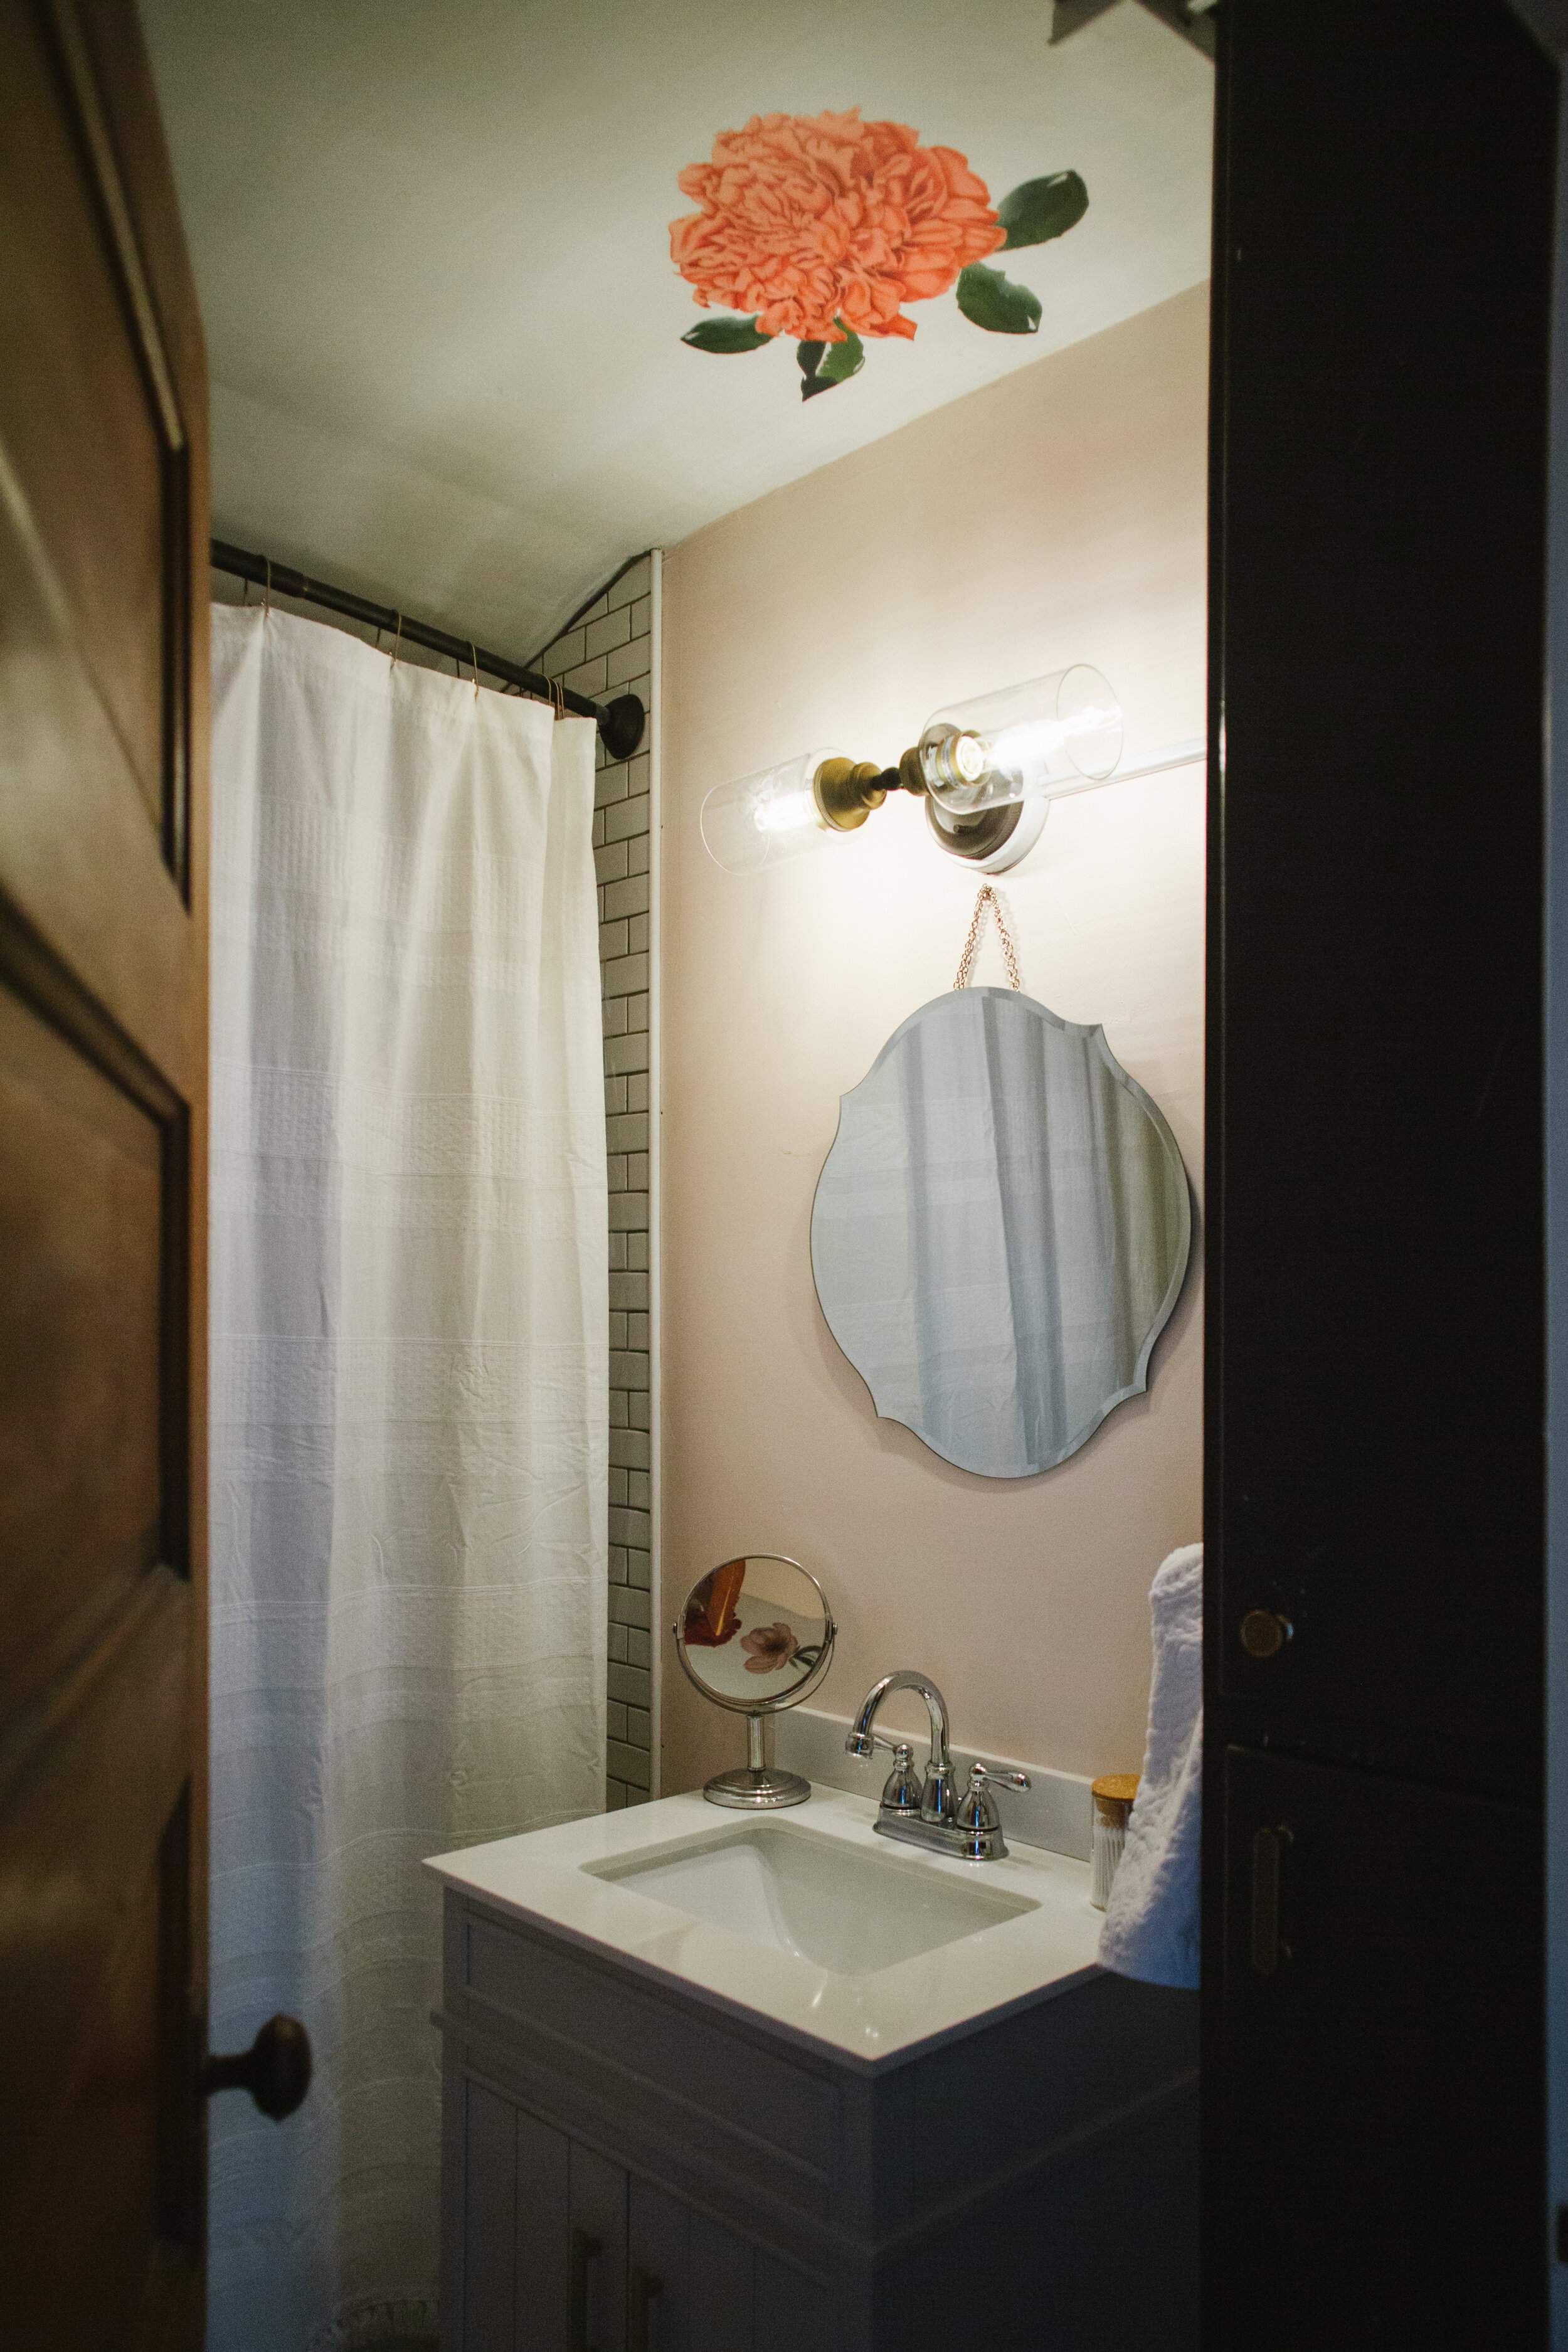 Bathroom with ceiling decal